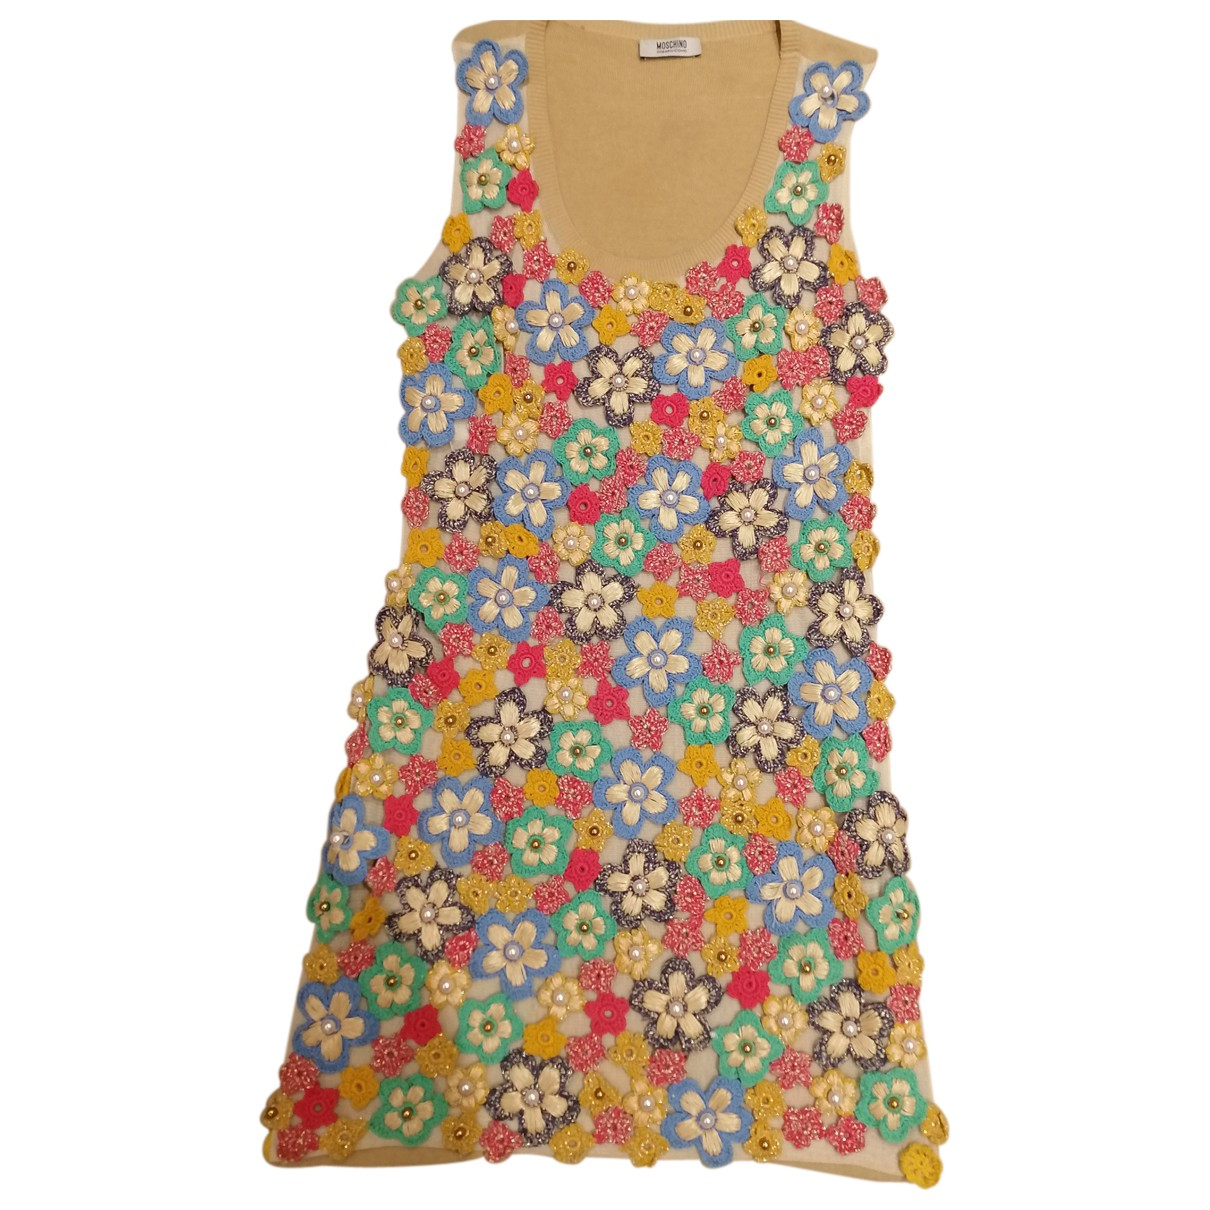 Moschino Cheap And Chic N Multicolour Cotton dress for Women 10 UK